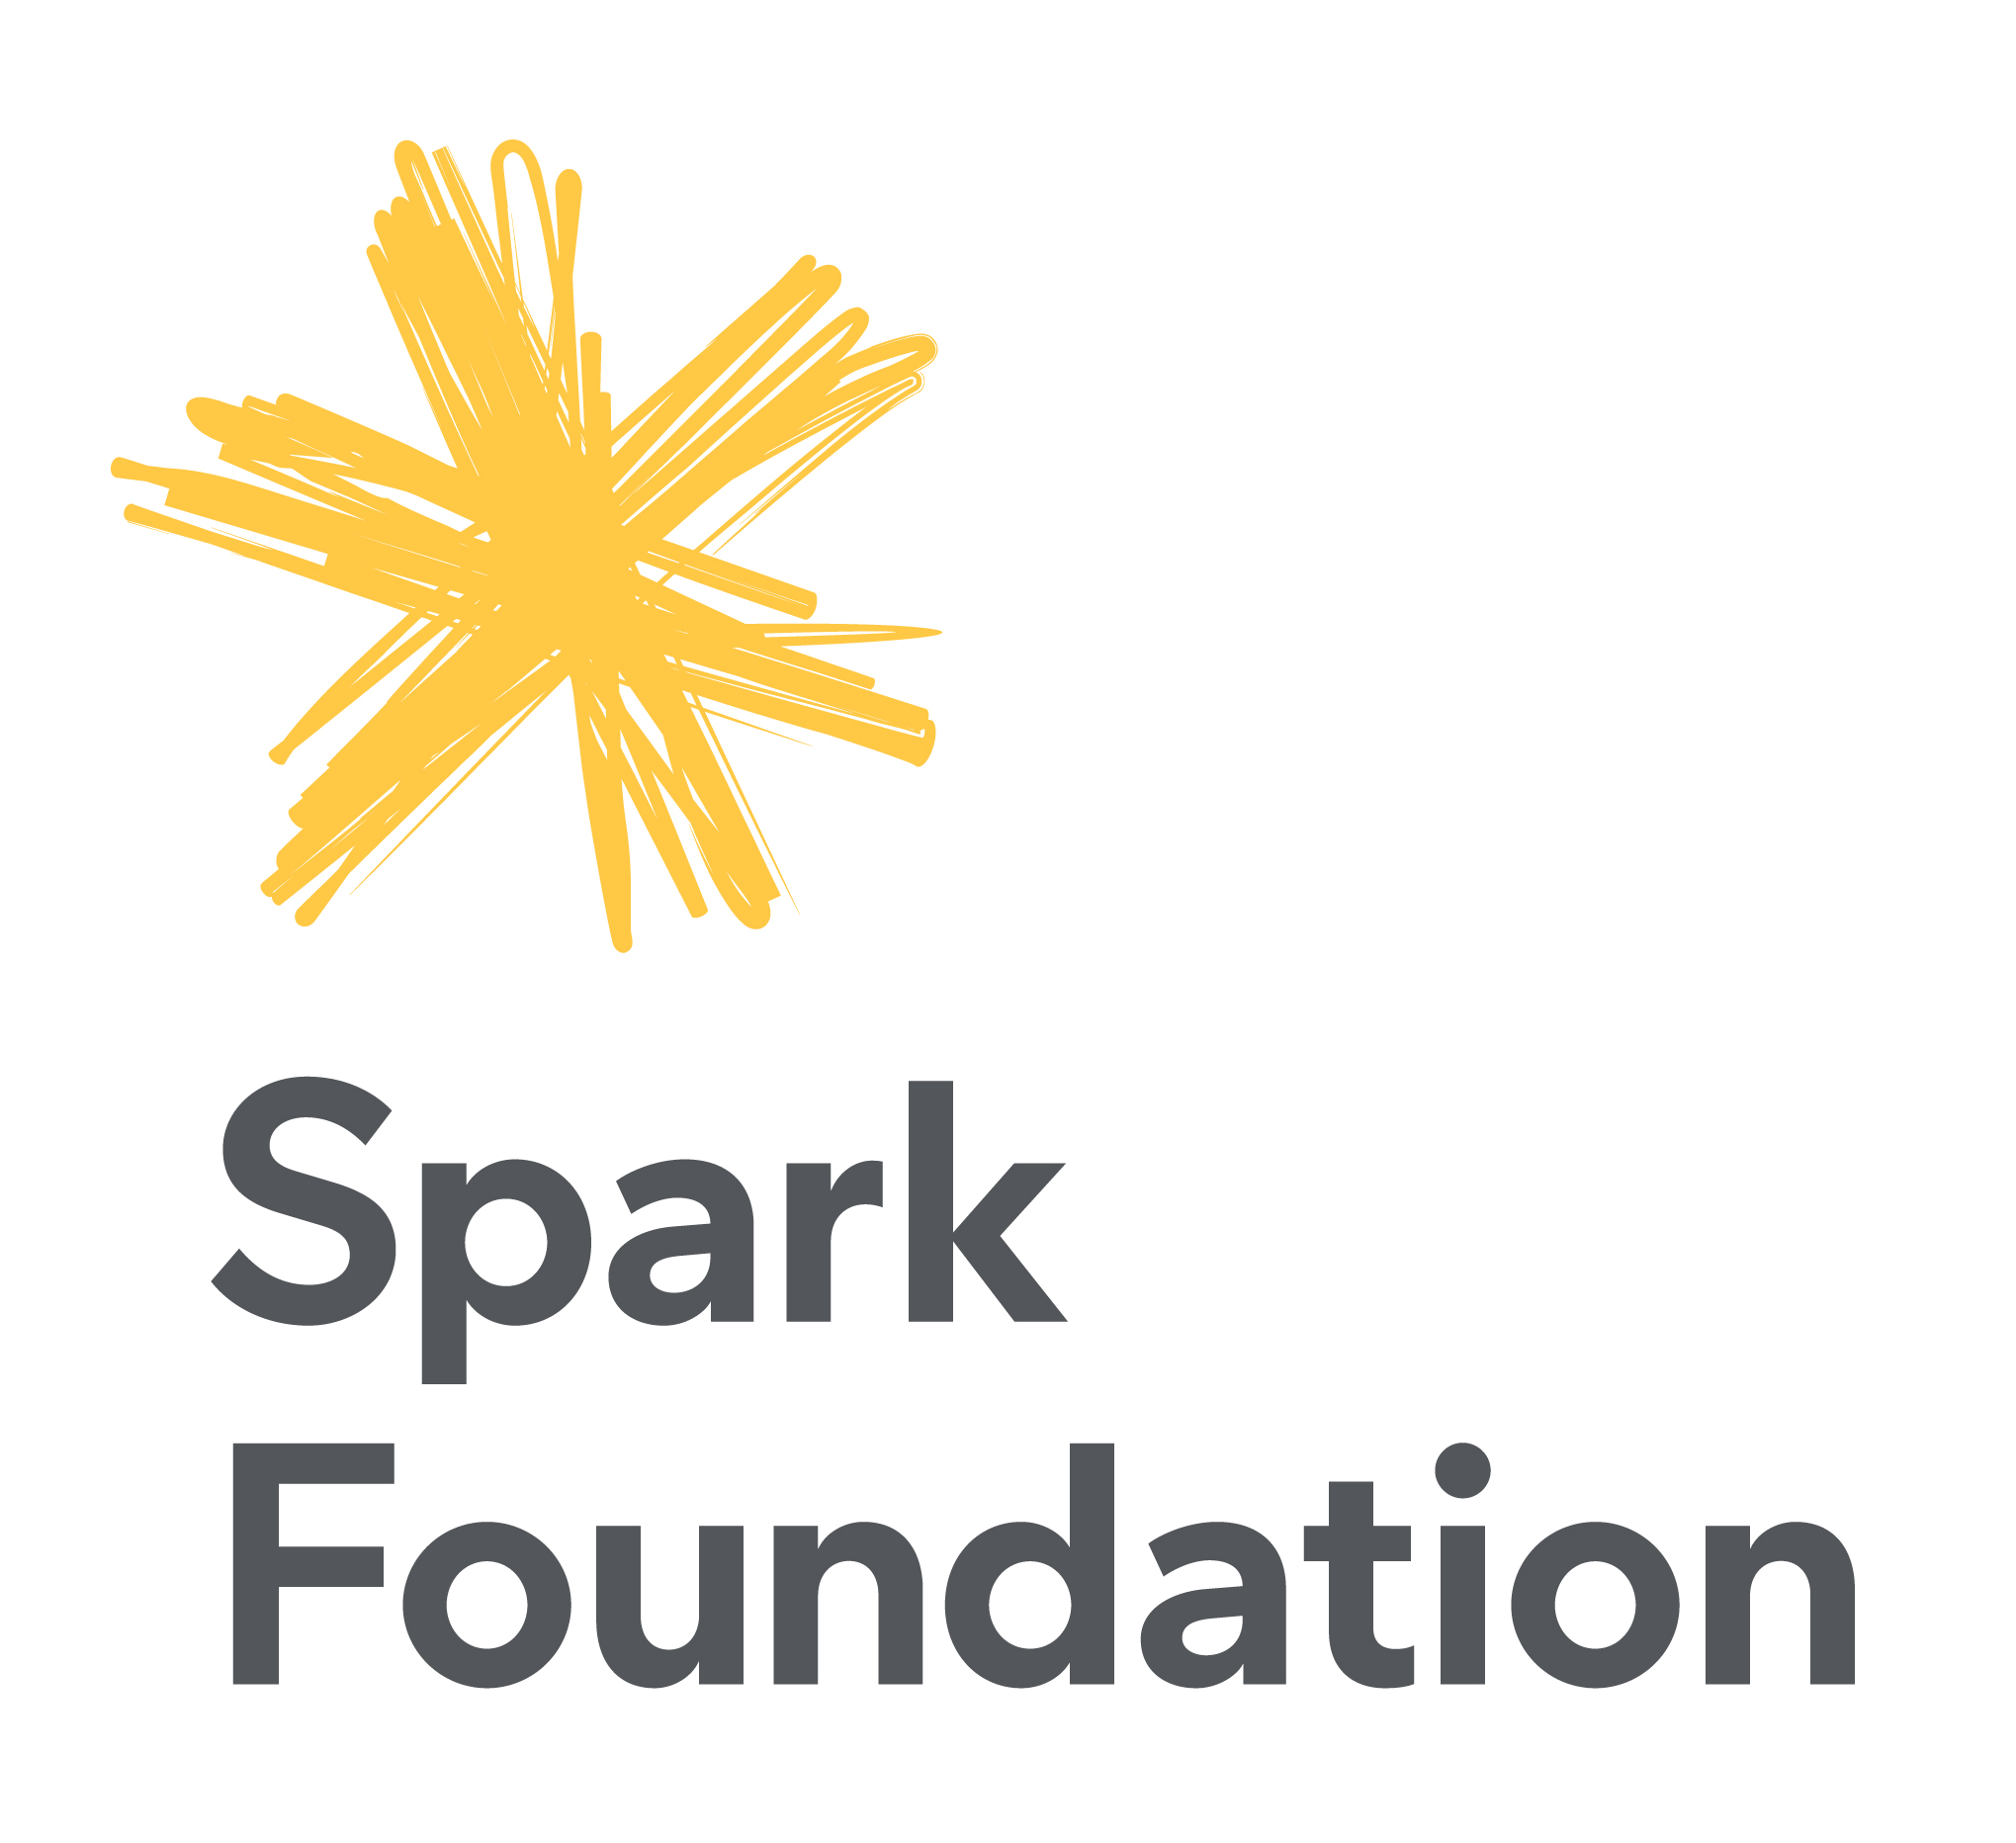 Spark Foundation logo